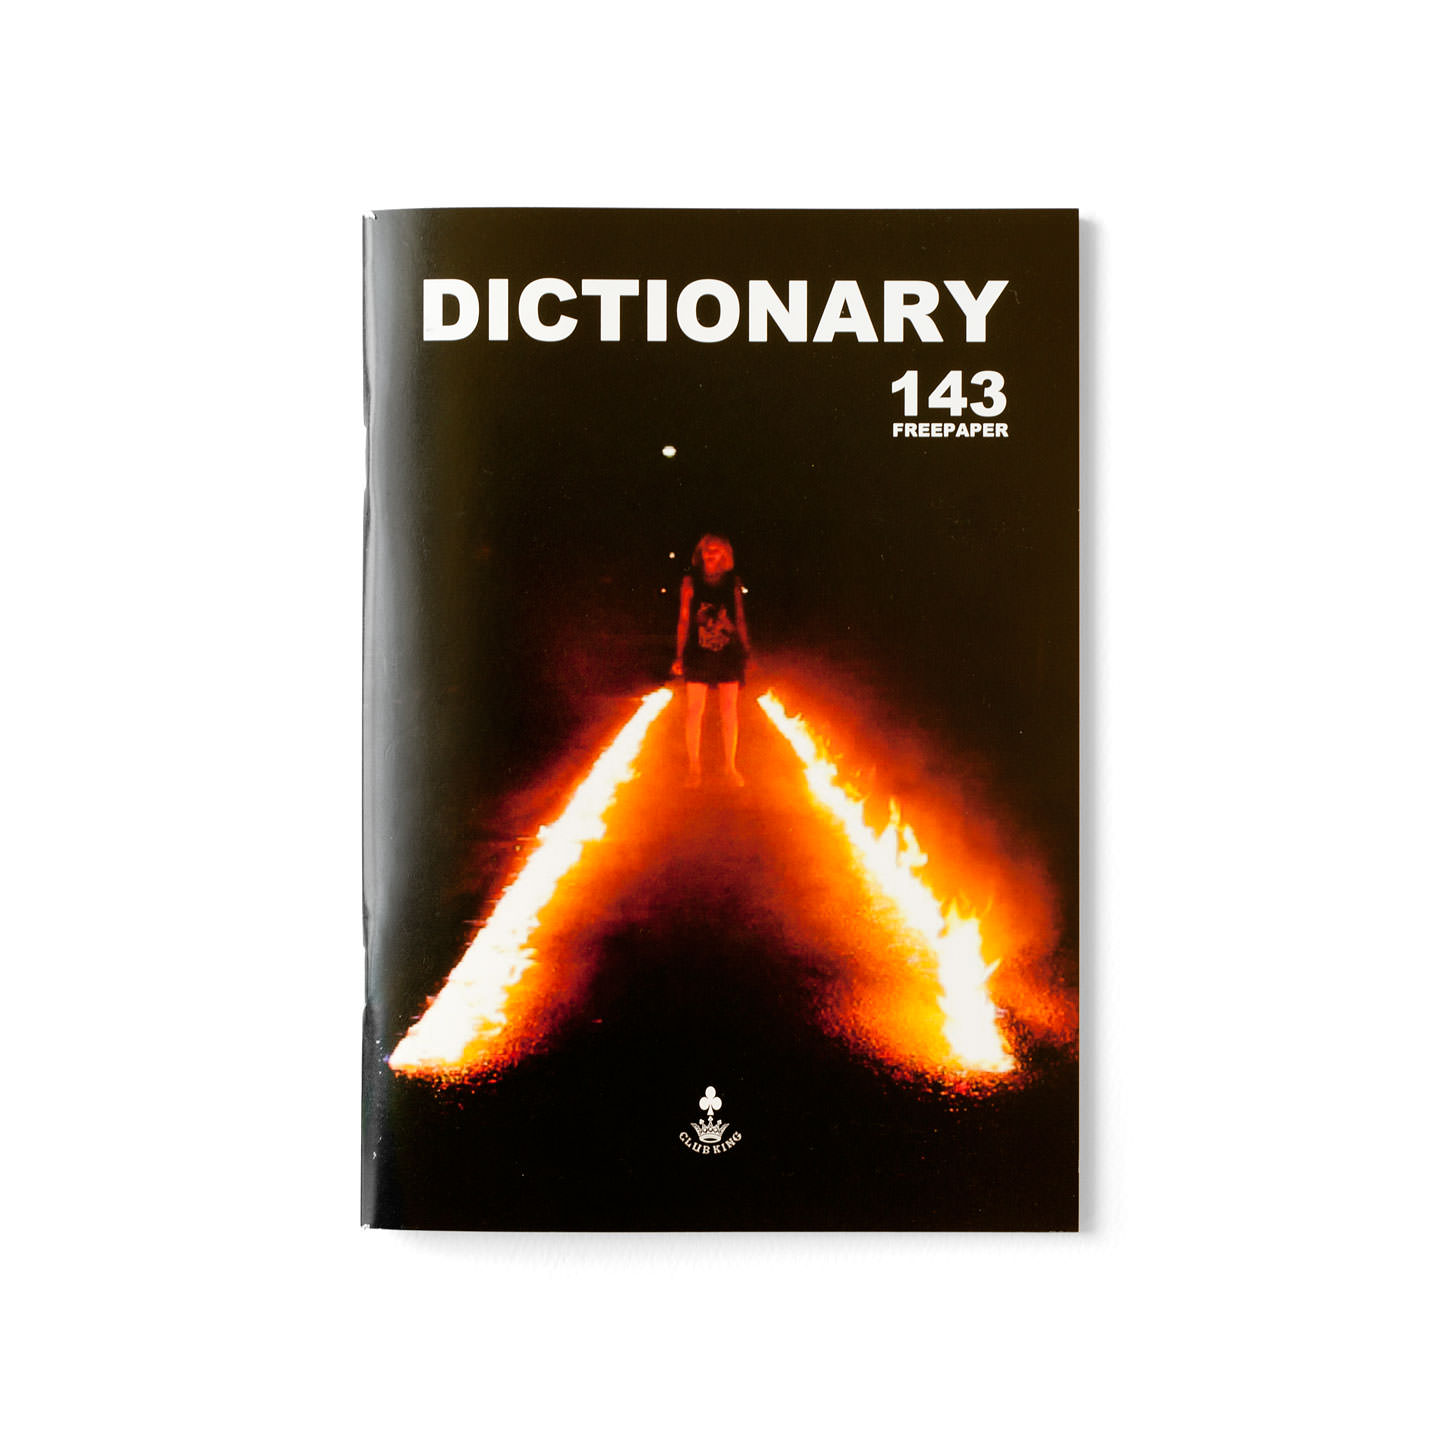 Dictionary Vol. 143